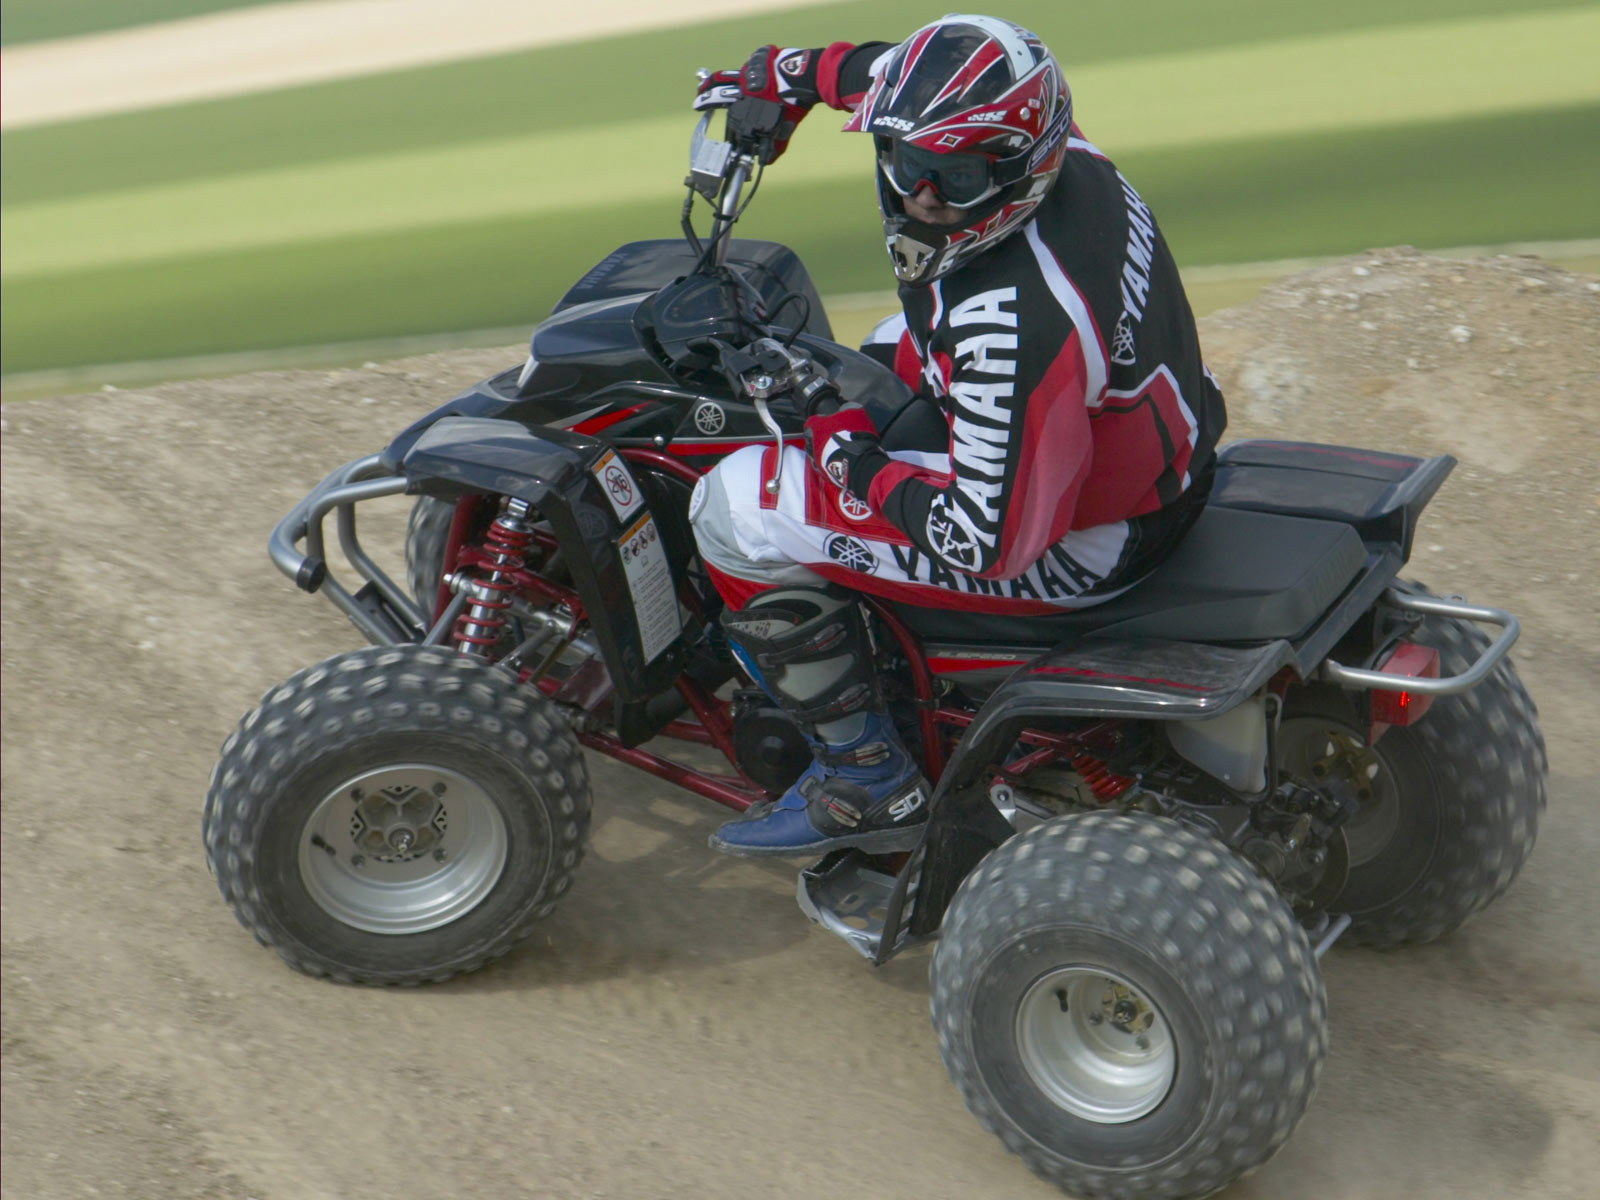 yamaha atv pictures 2006 banshee 350 accident lawyers info. Black Bedroom Furniture Sets. Home Design Ideas